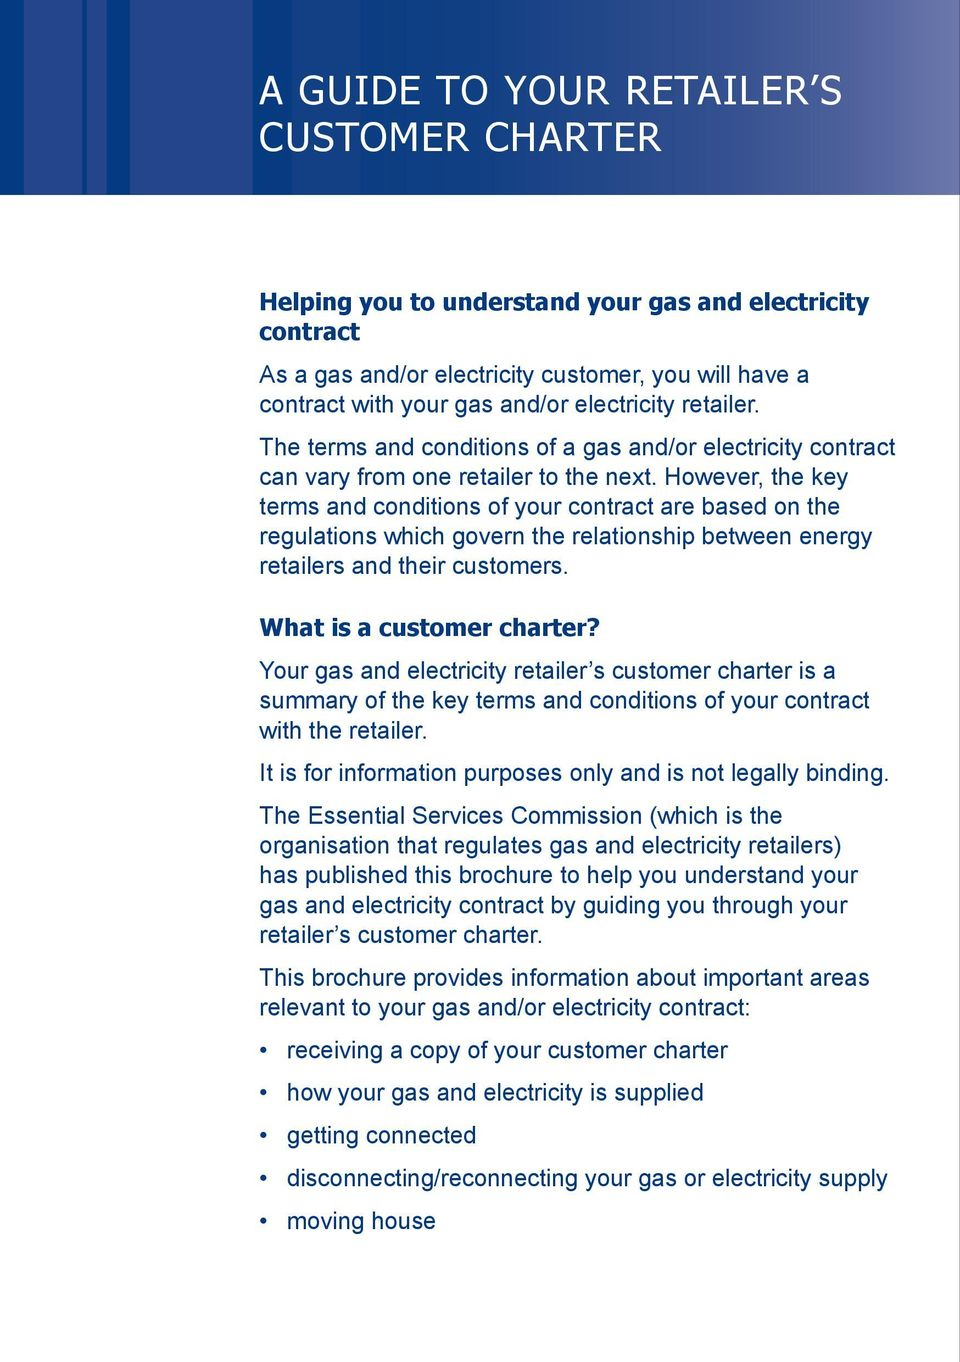 However, the key terms and conditions of your contract are based on the regulations which govern the relationship between energy retailers and their customers. What is a customer charter?